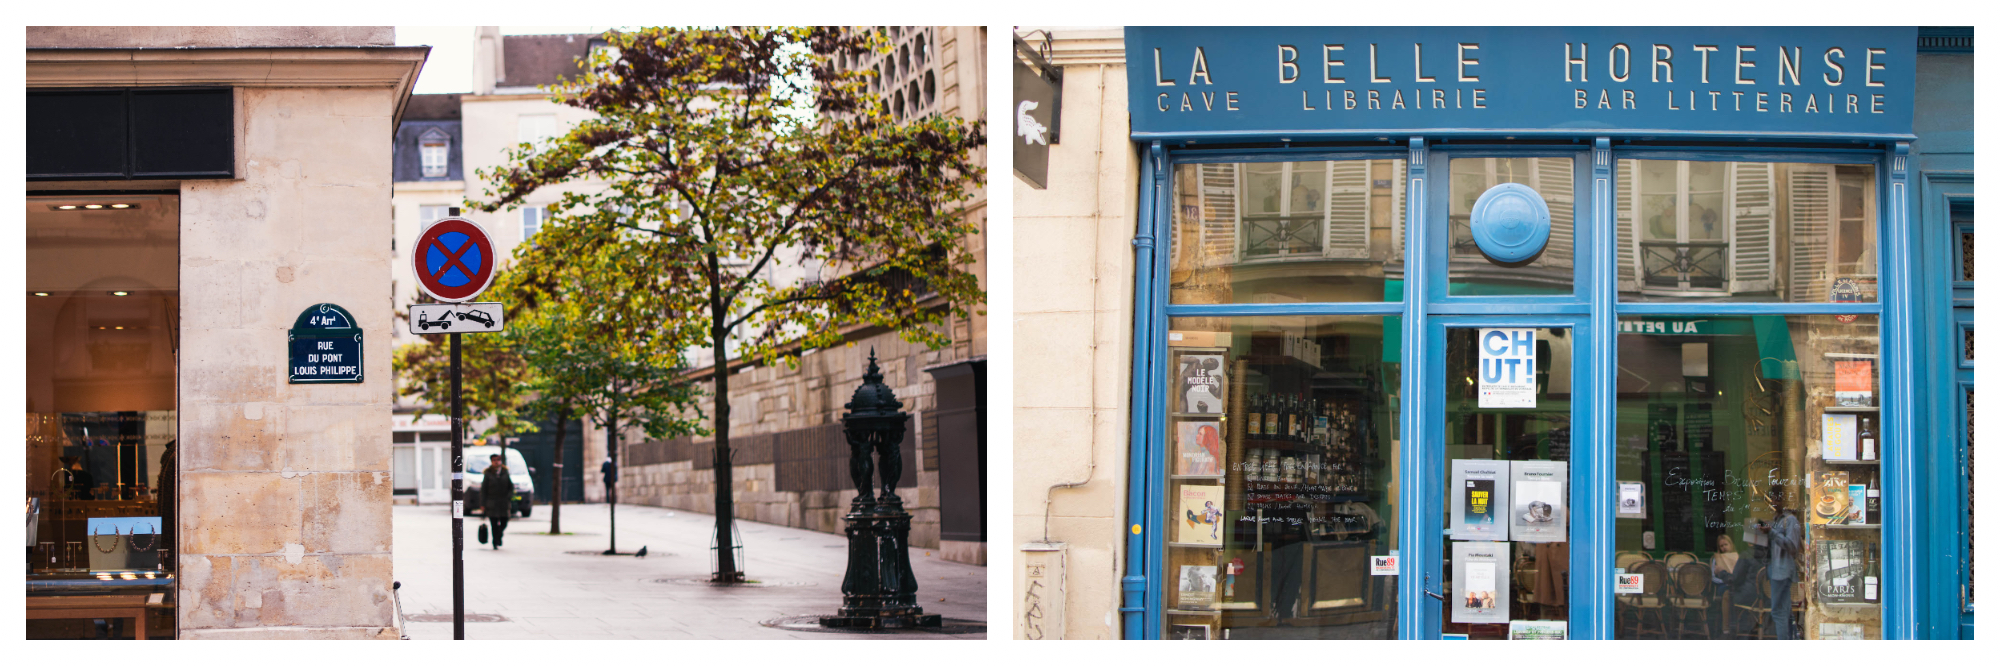 On left: A peaceful, sunny day on rue du Pont Louis Philippe in Paris' 4th arrondissement. On right: The wine bar La Belle Hortense is a wine cave, bookshop, and literary ball rolled into one, and a popular spot for an apéritif.